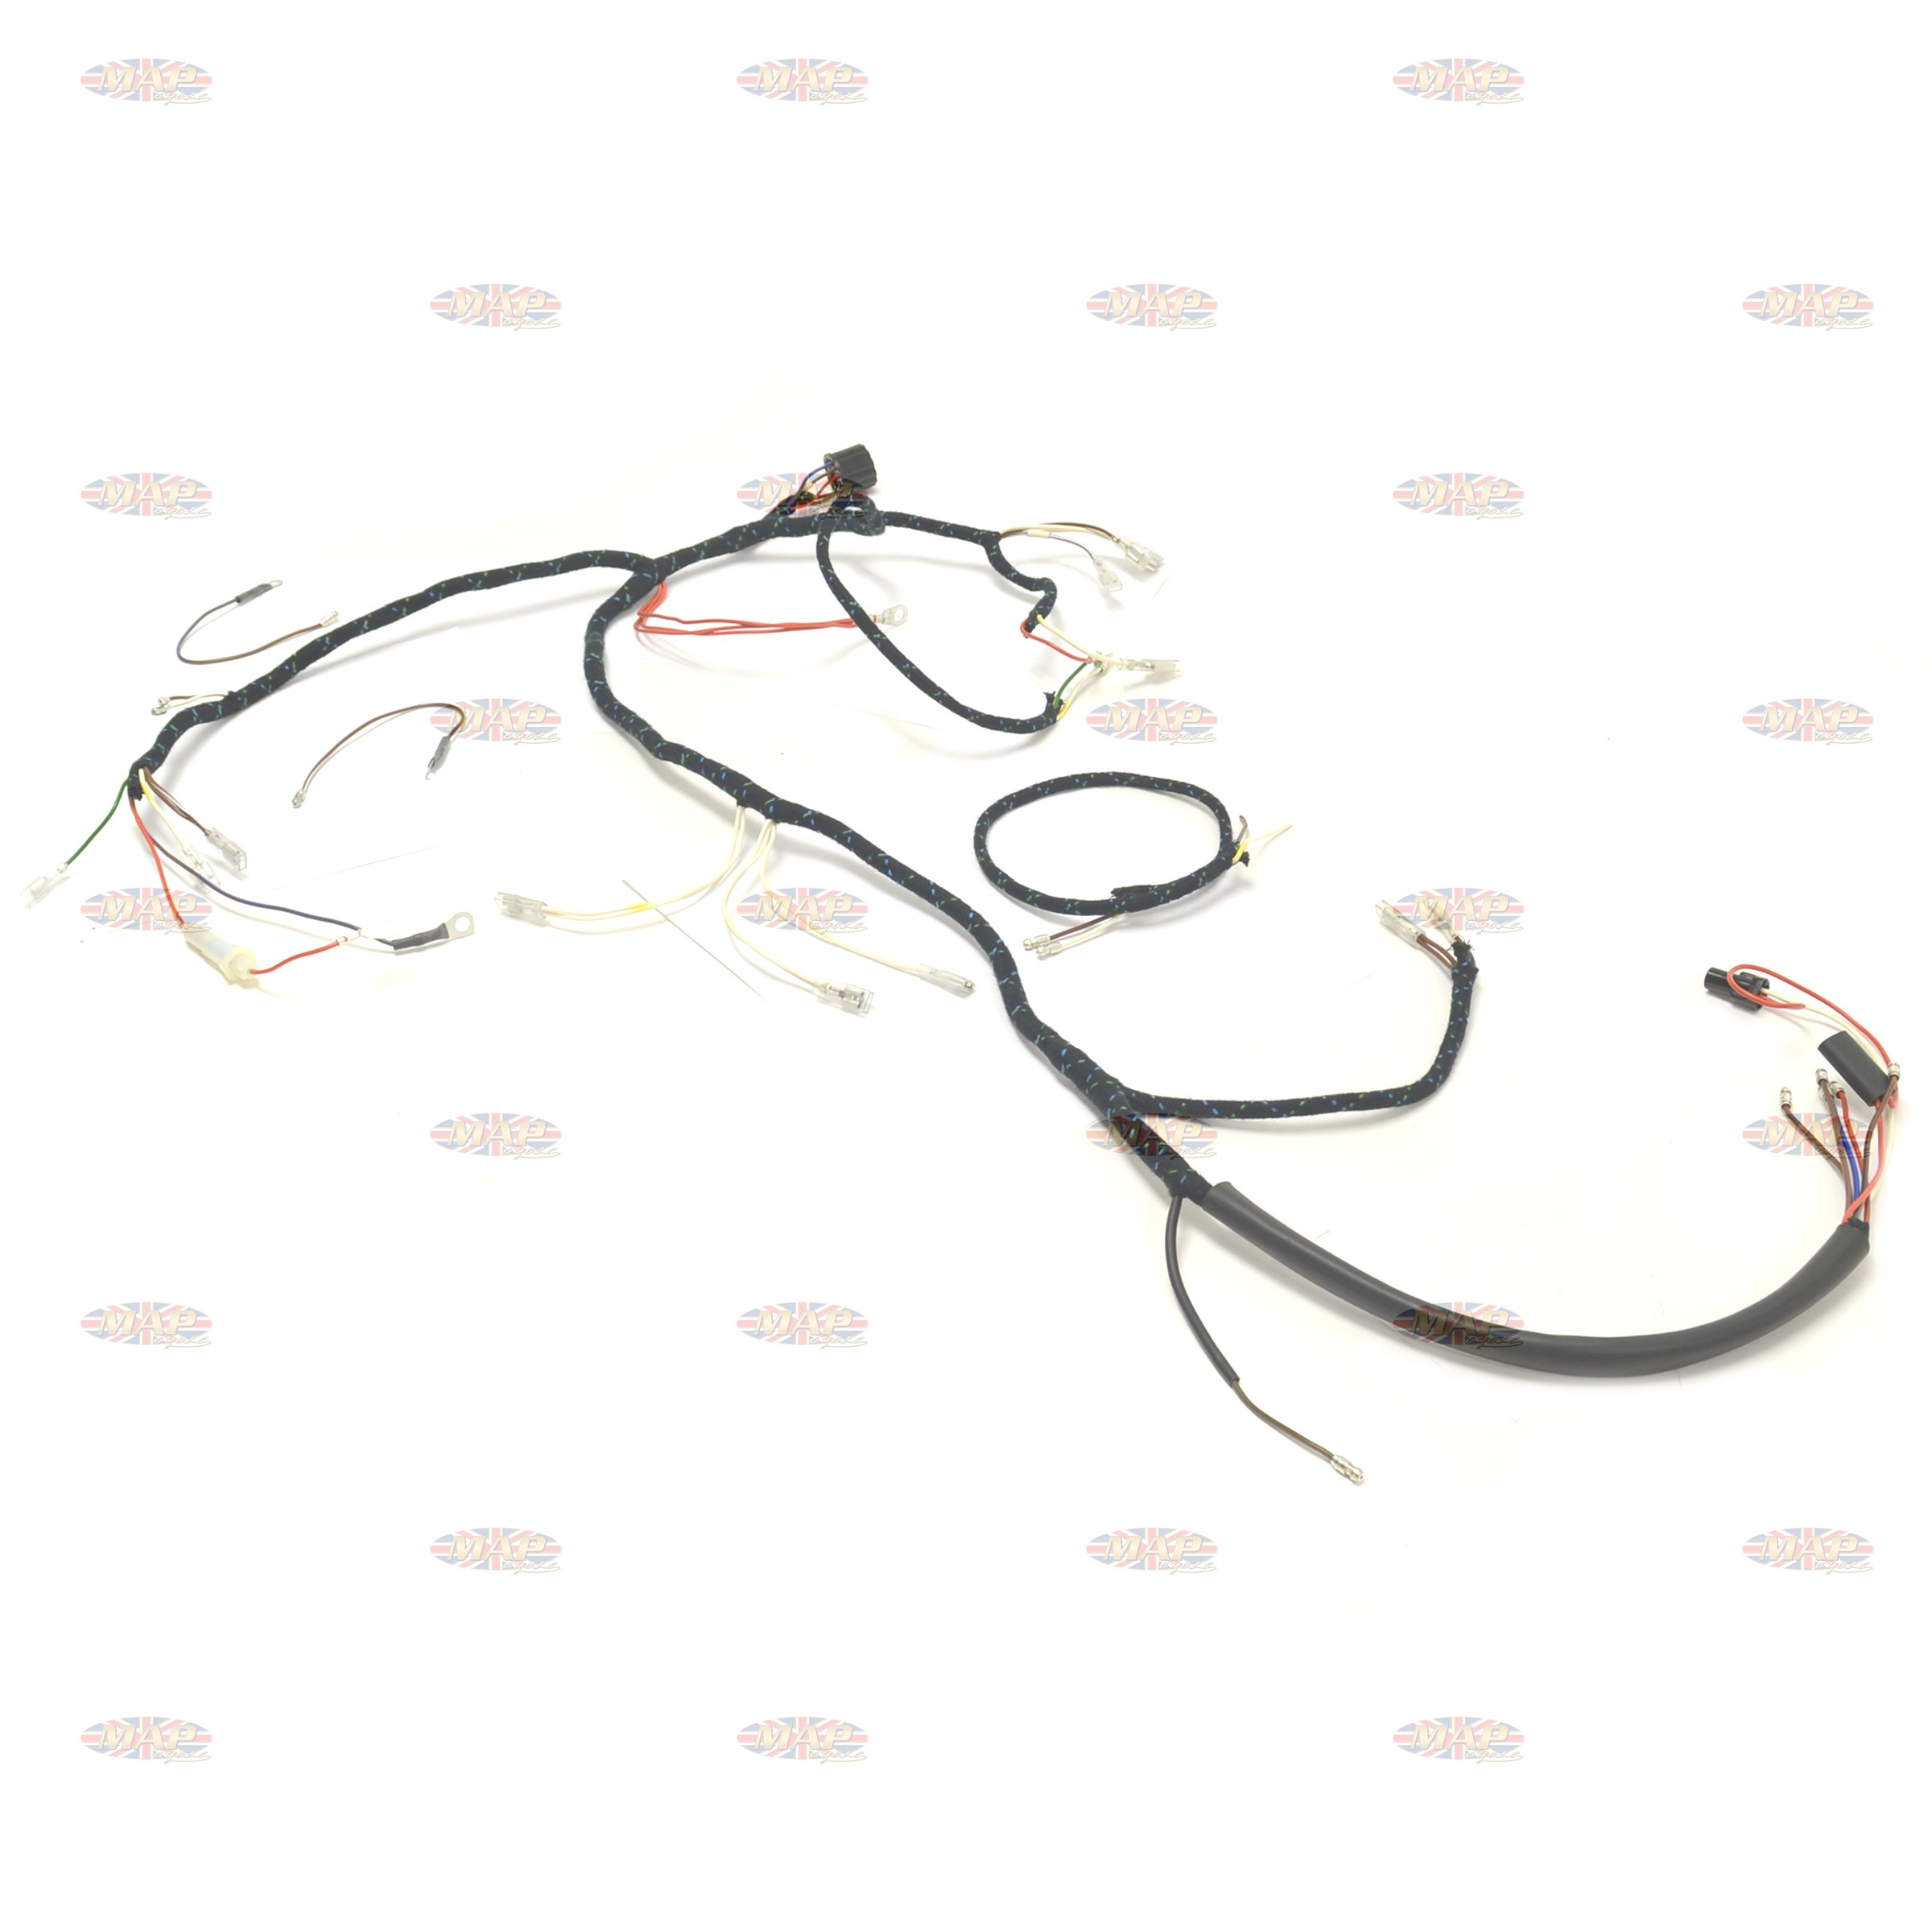 Triumph 1966 T90 T100 T120 TR6 UK-Made 12-Volt Wiring Harness